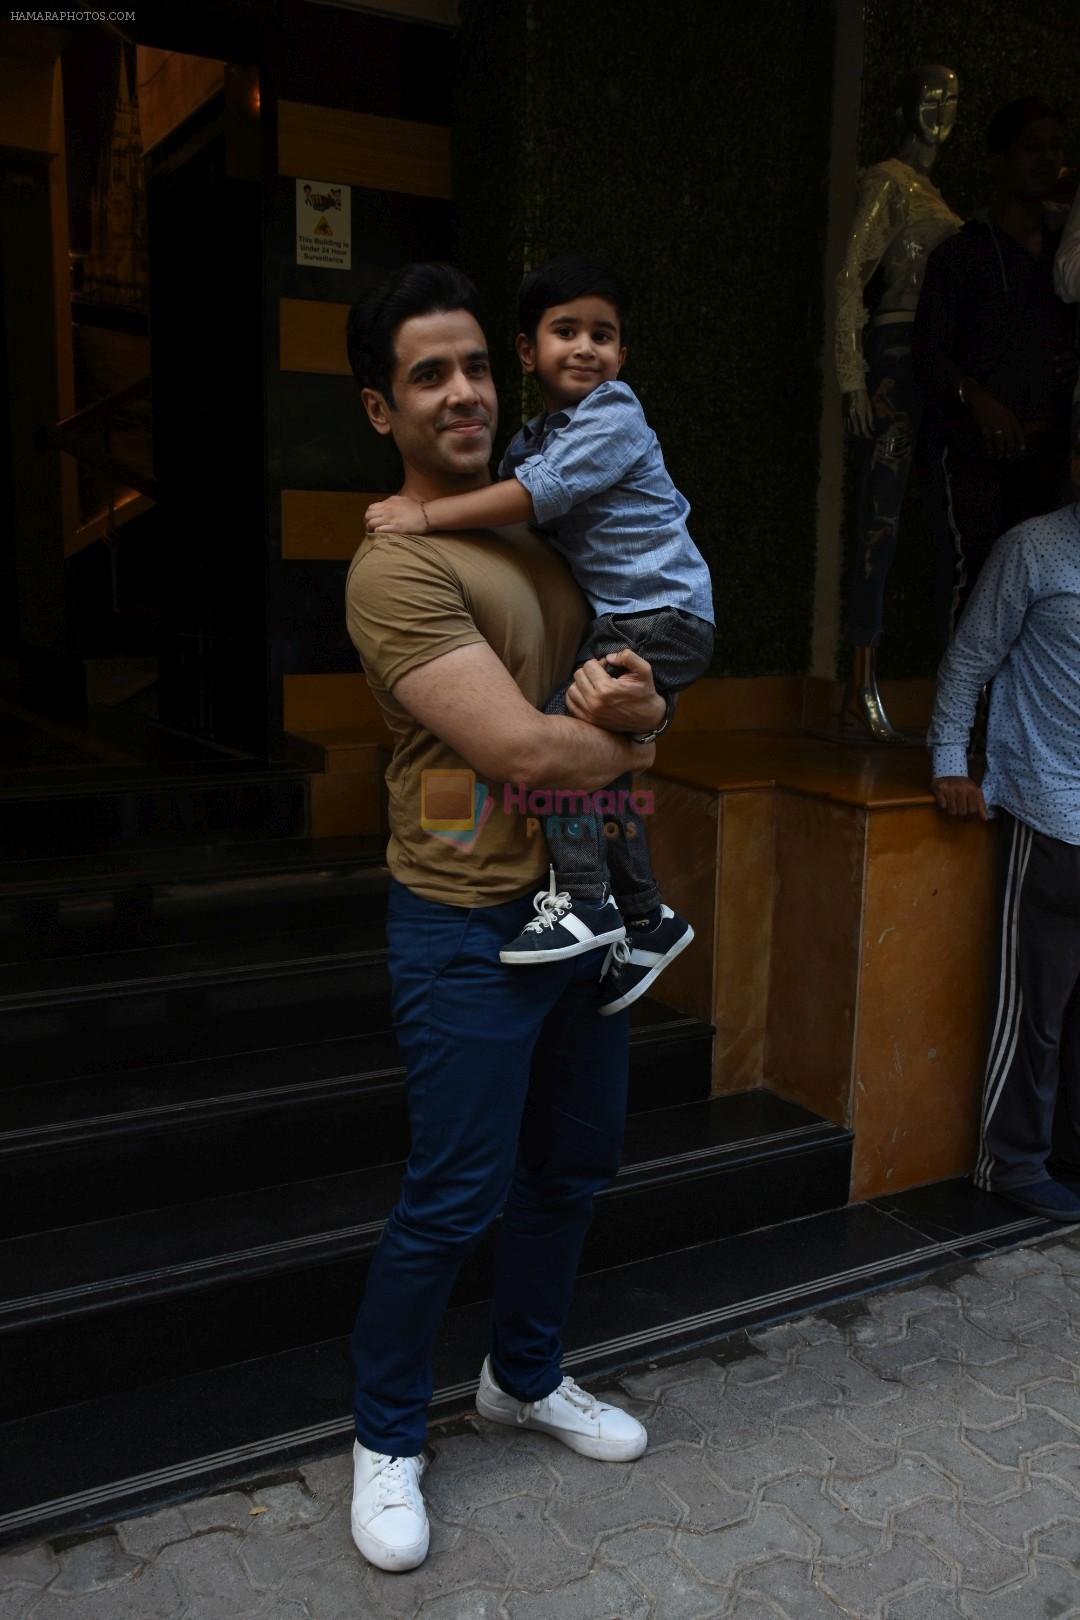 Tusshar Kapoor at the Birthday celebration of Tusshar Kapoor's son Lakshya at bandra on 1st June 2019